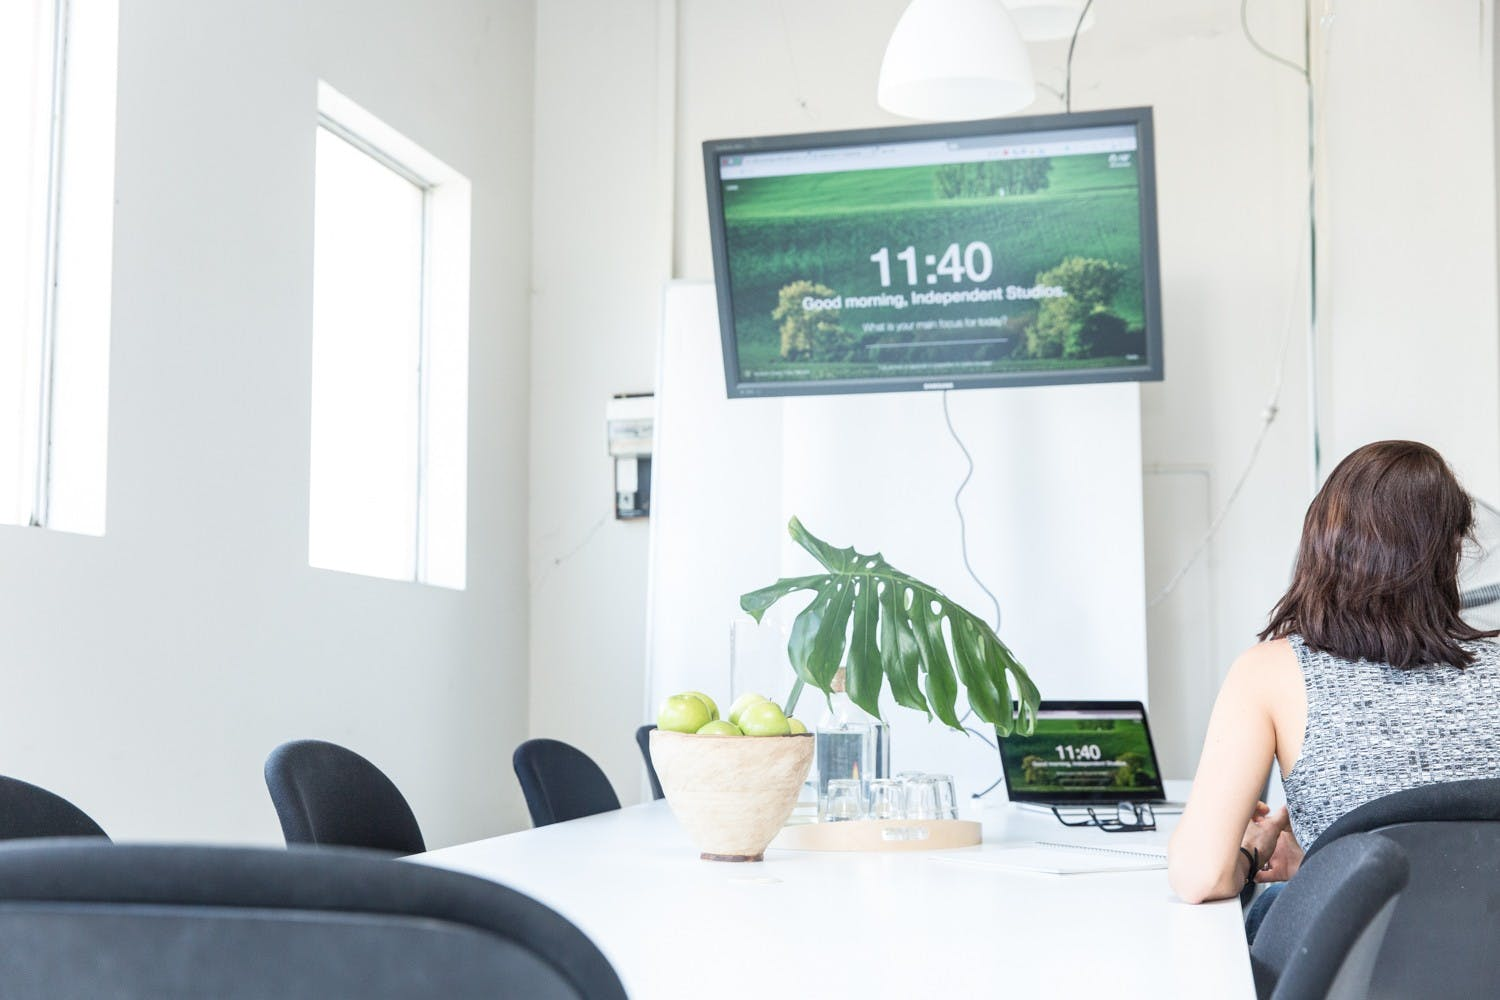 Meeting room at Independent Studios, image 4